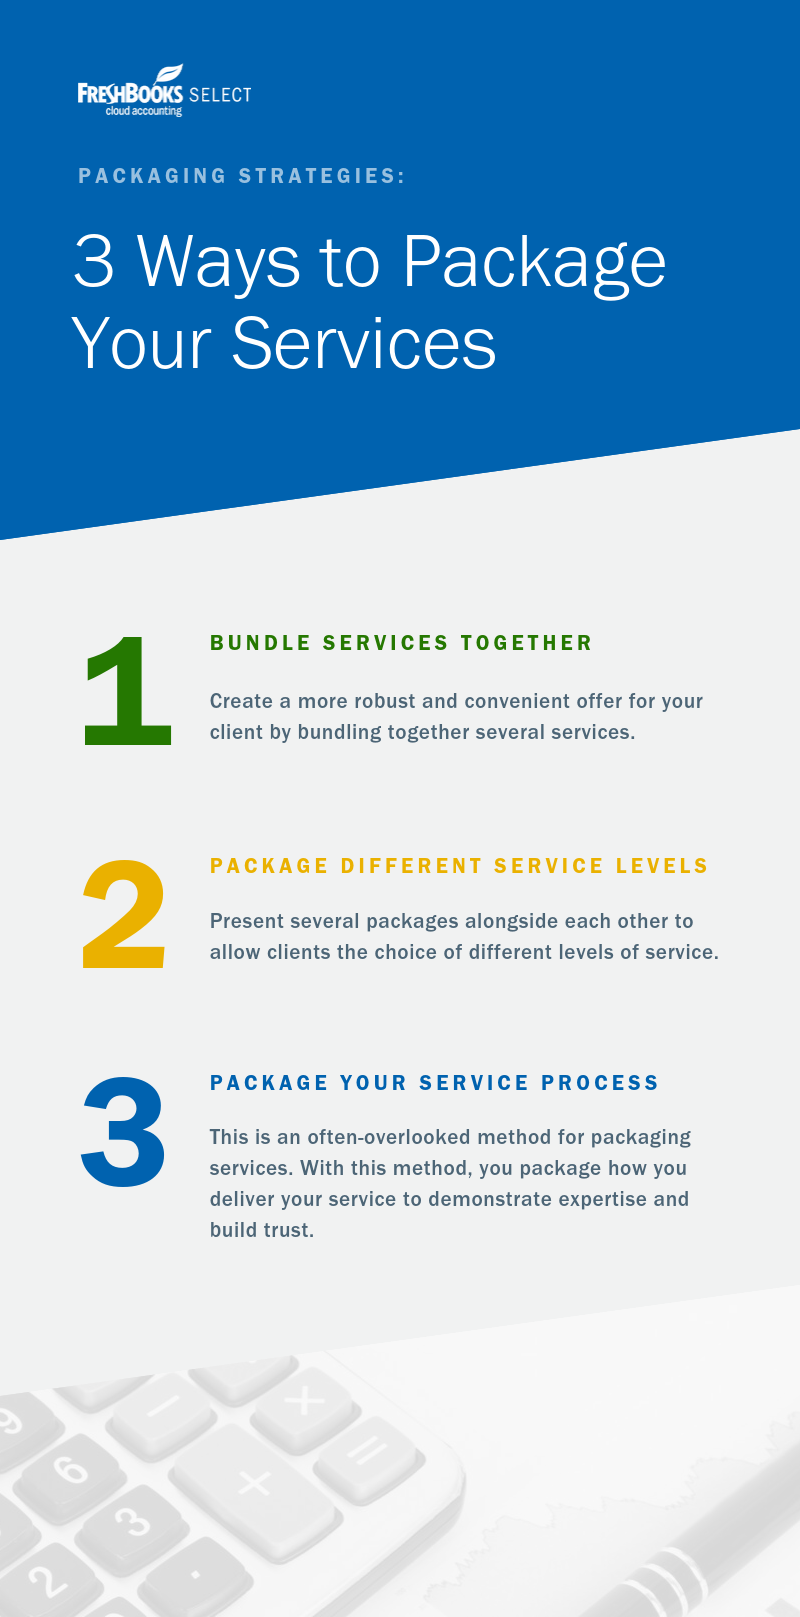 3 Ways to Package Your Services